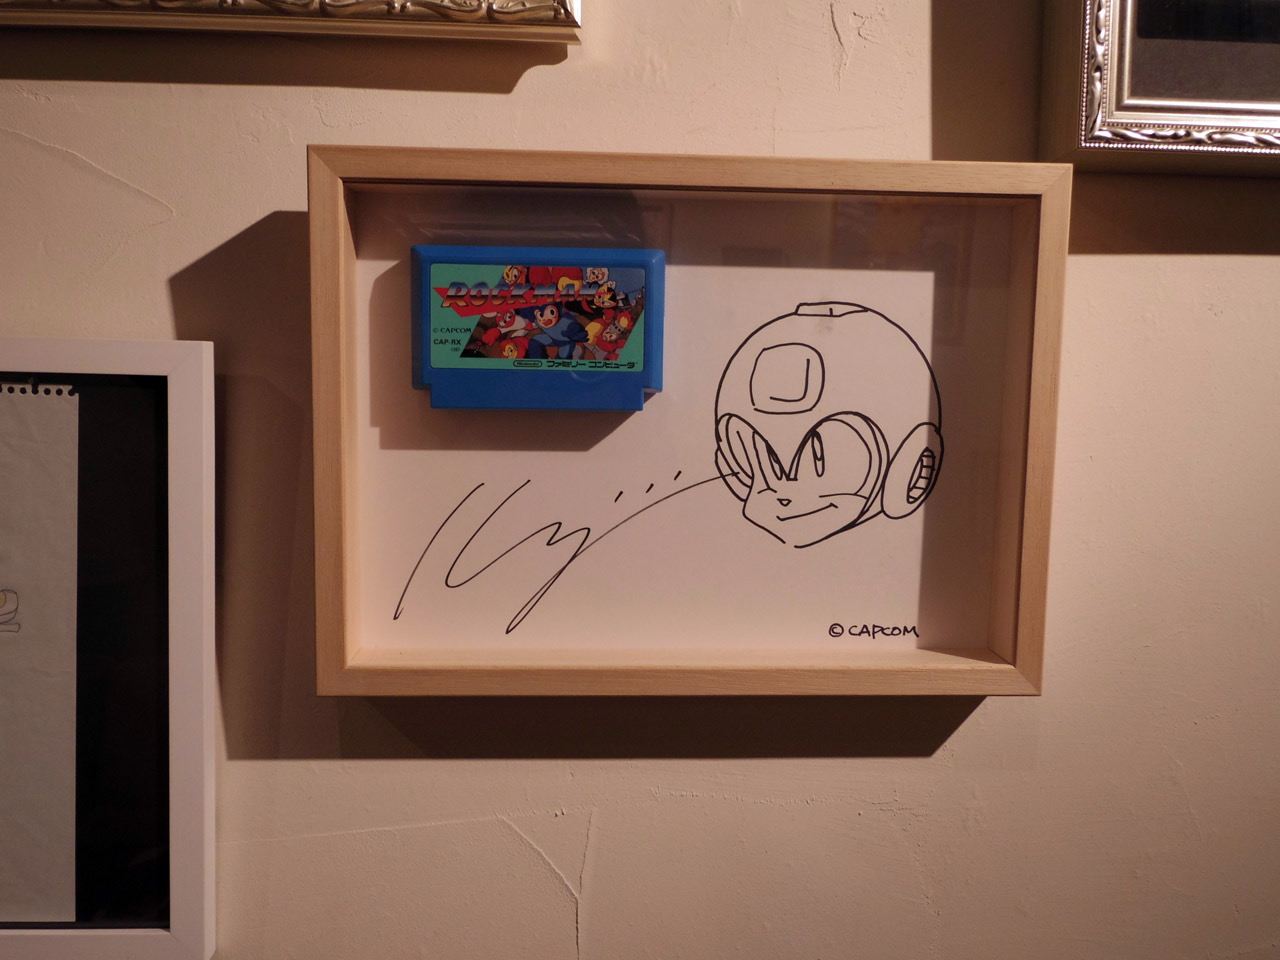 original art of mega man by keiji inafune